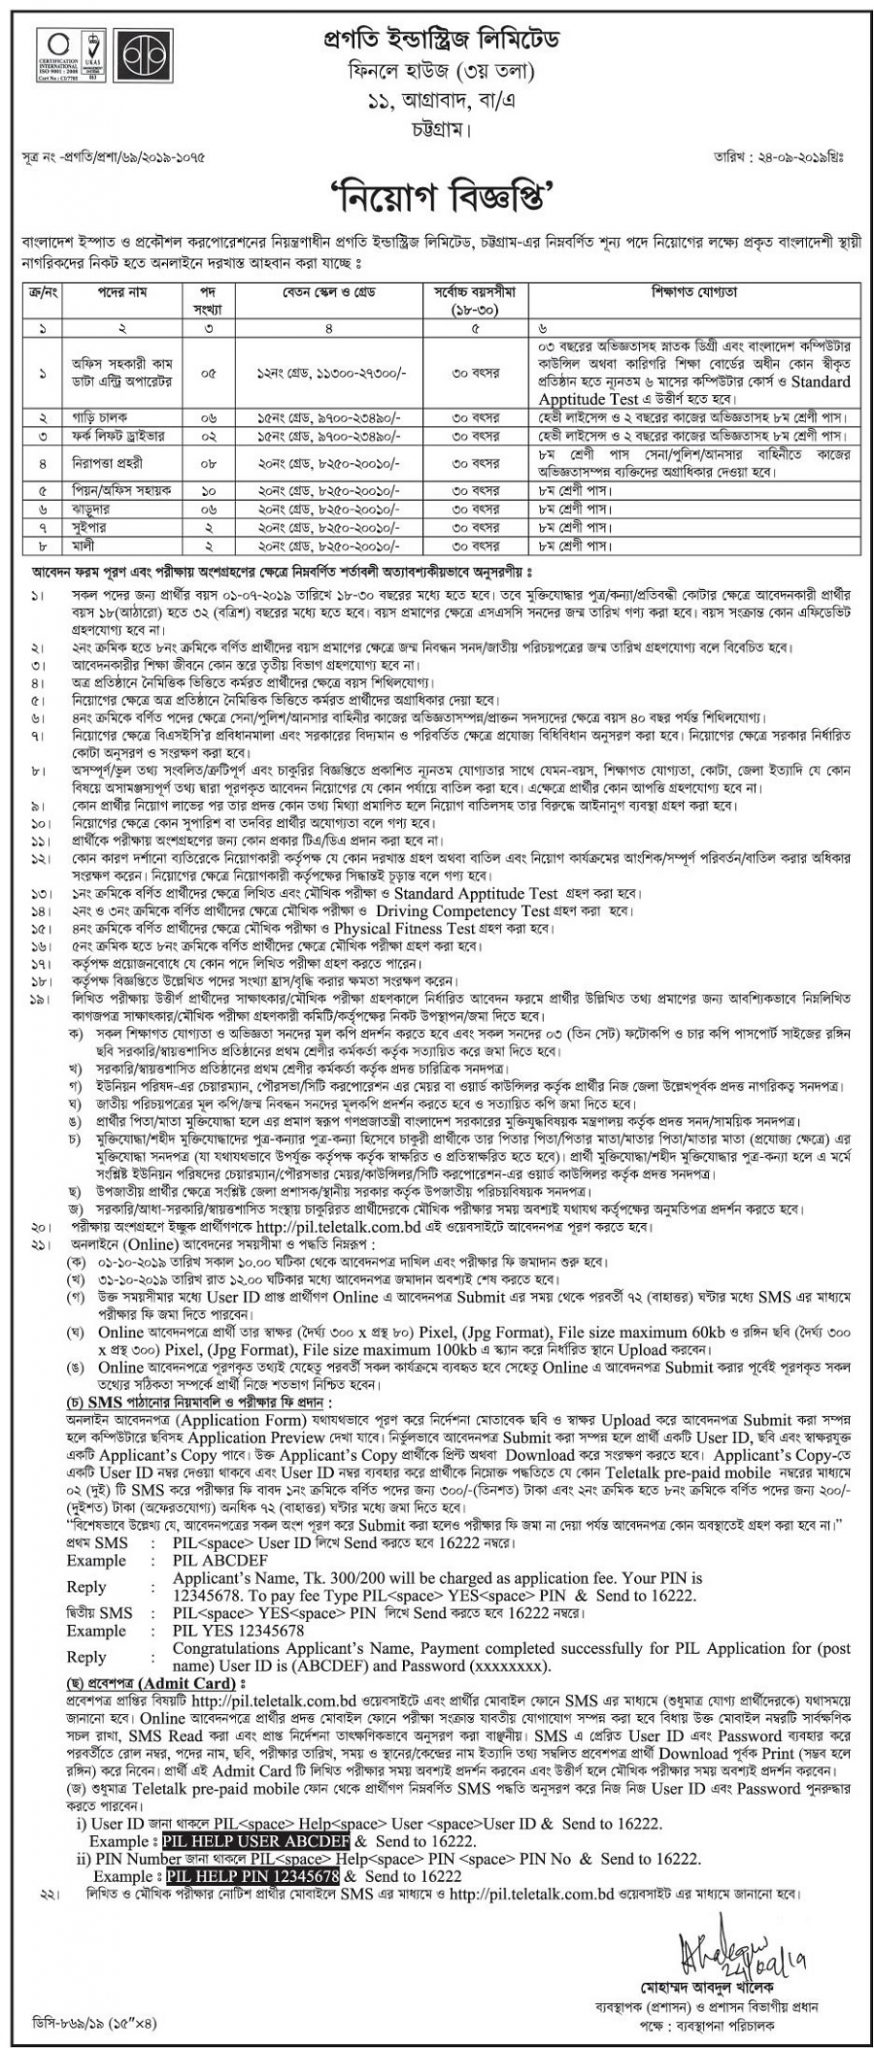 Pragoti Industries Limited Job Circular 2019